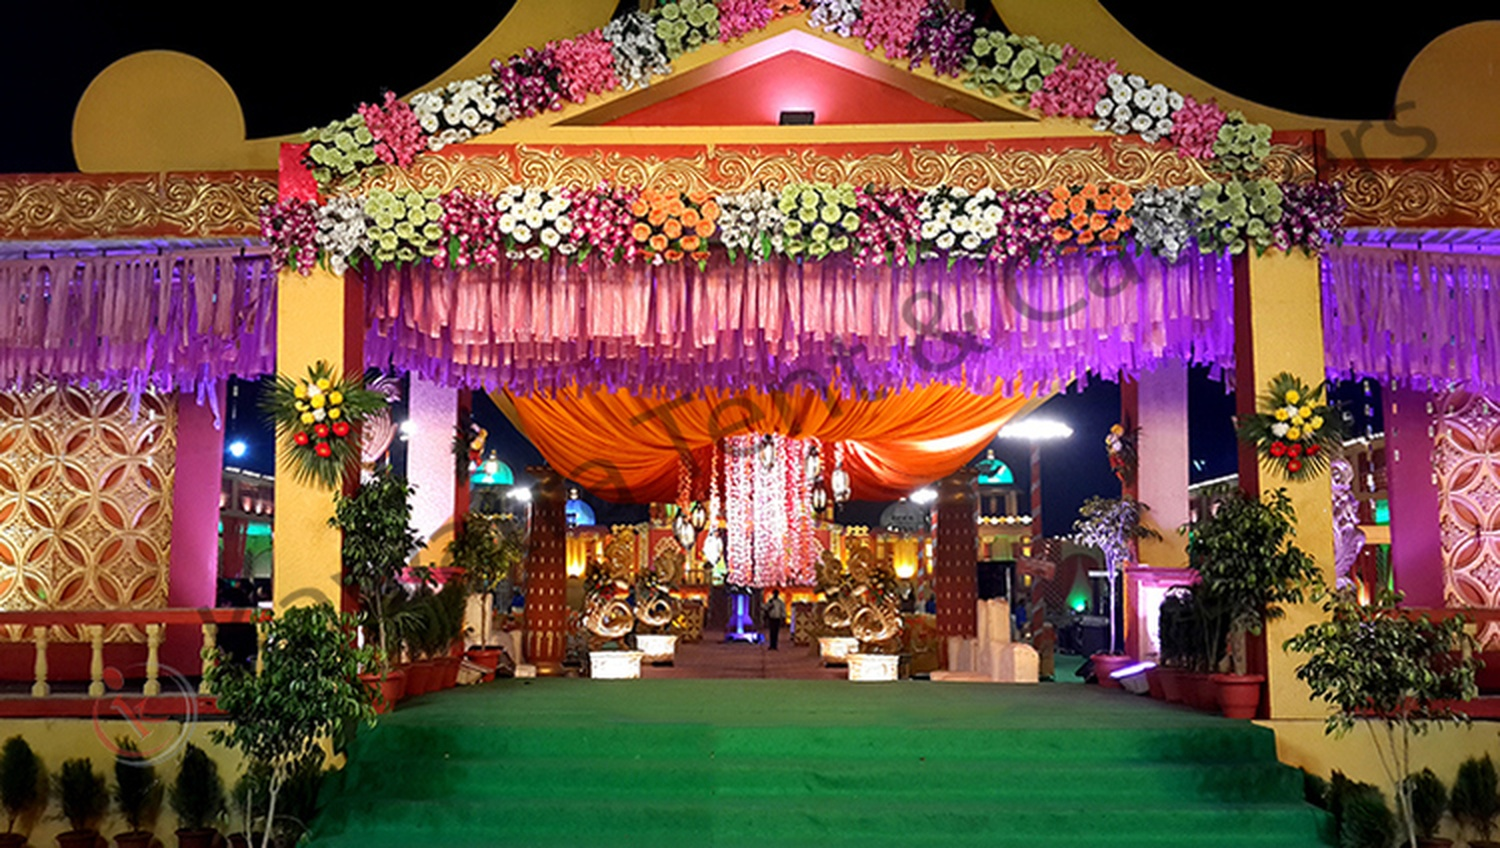 Overview ... & Haveli by Kawatra Tent u0026 Caterers Hari nagar Delhi | Wedding Lawn ...